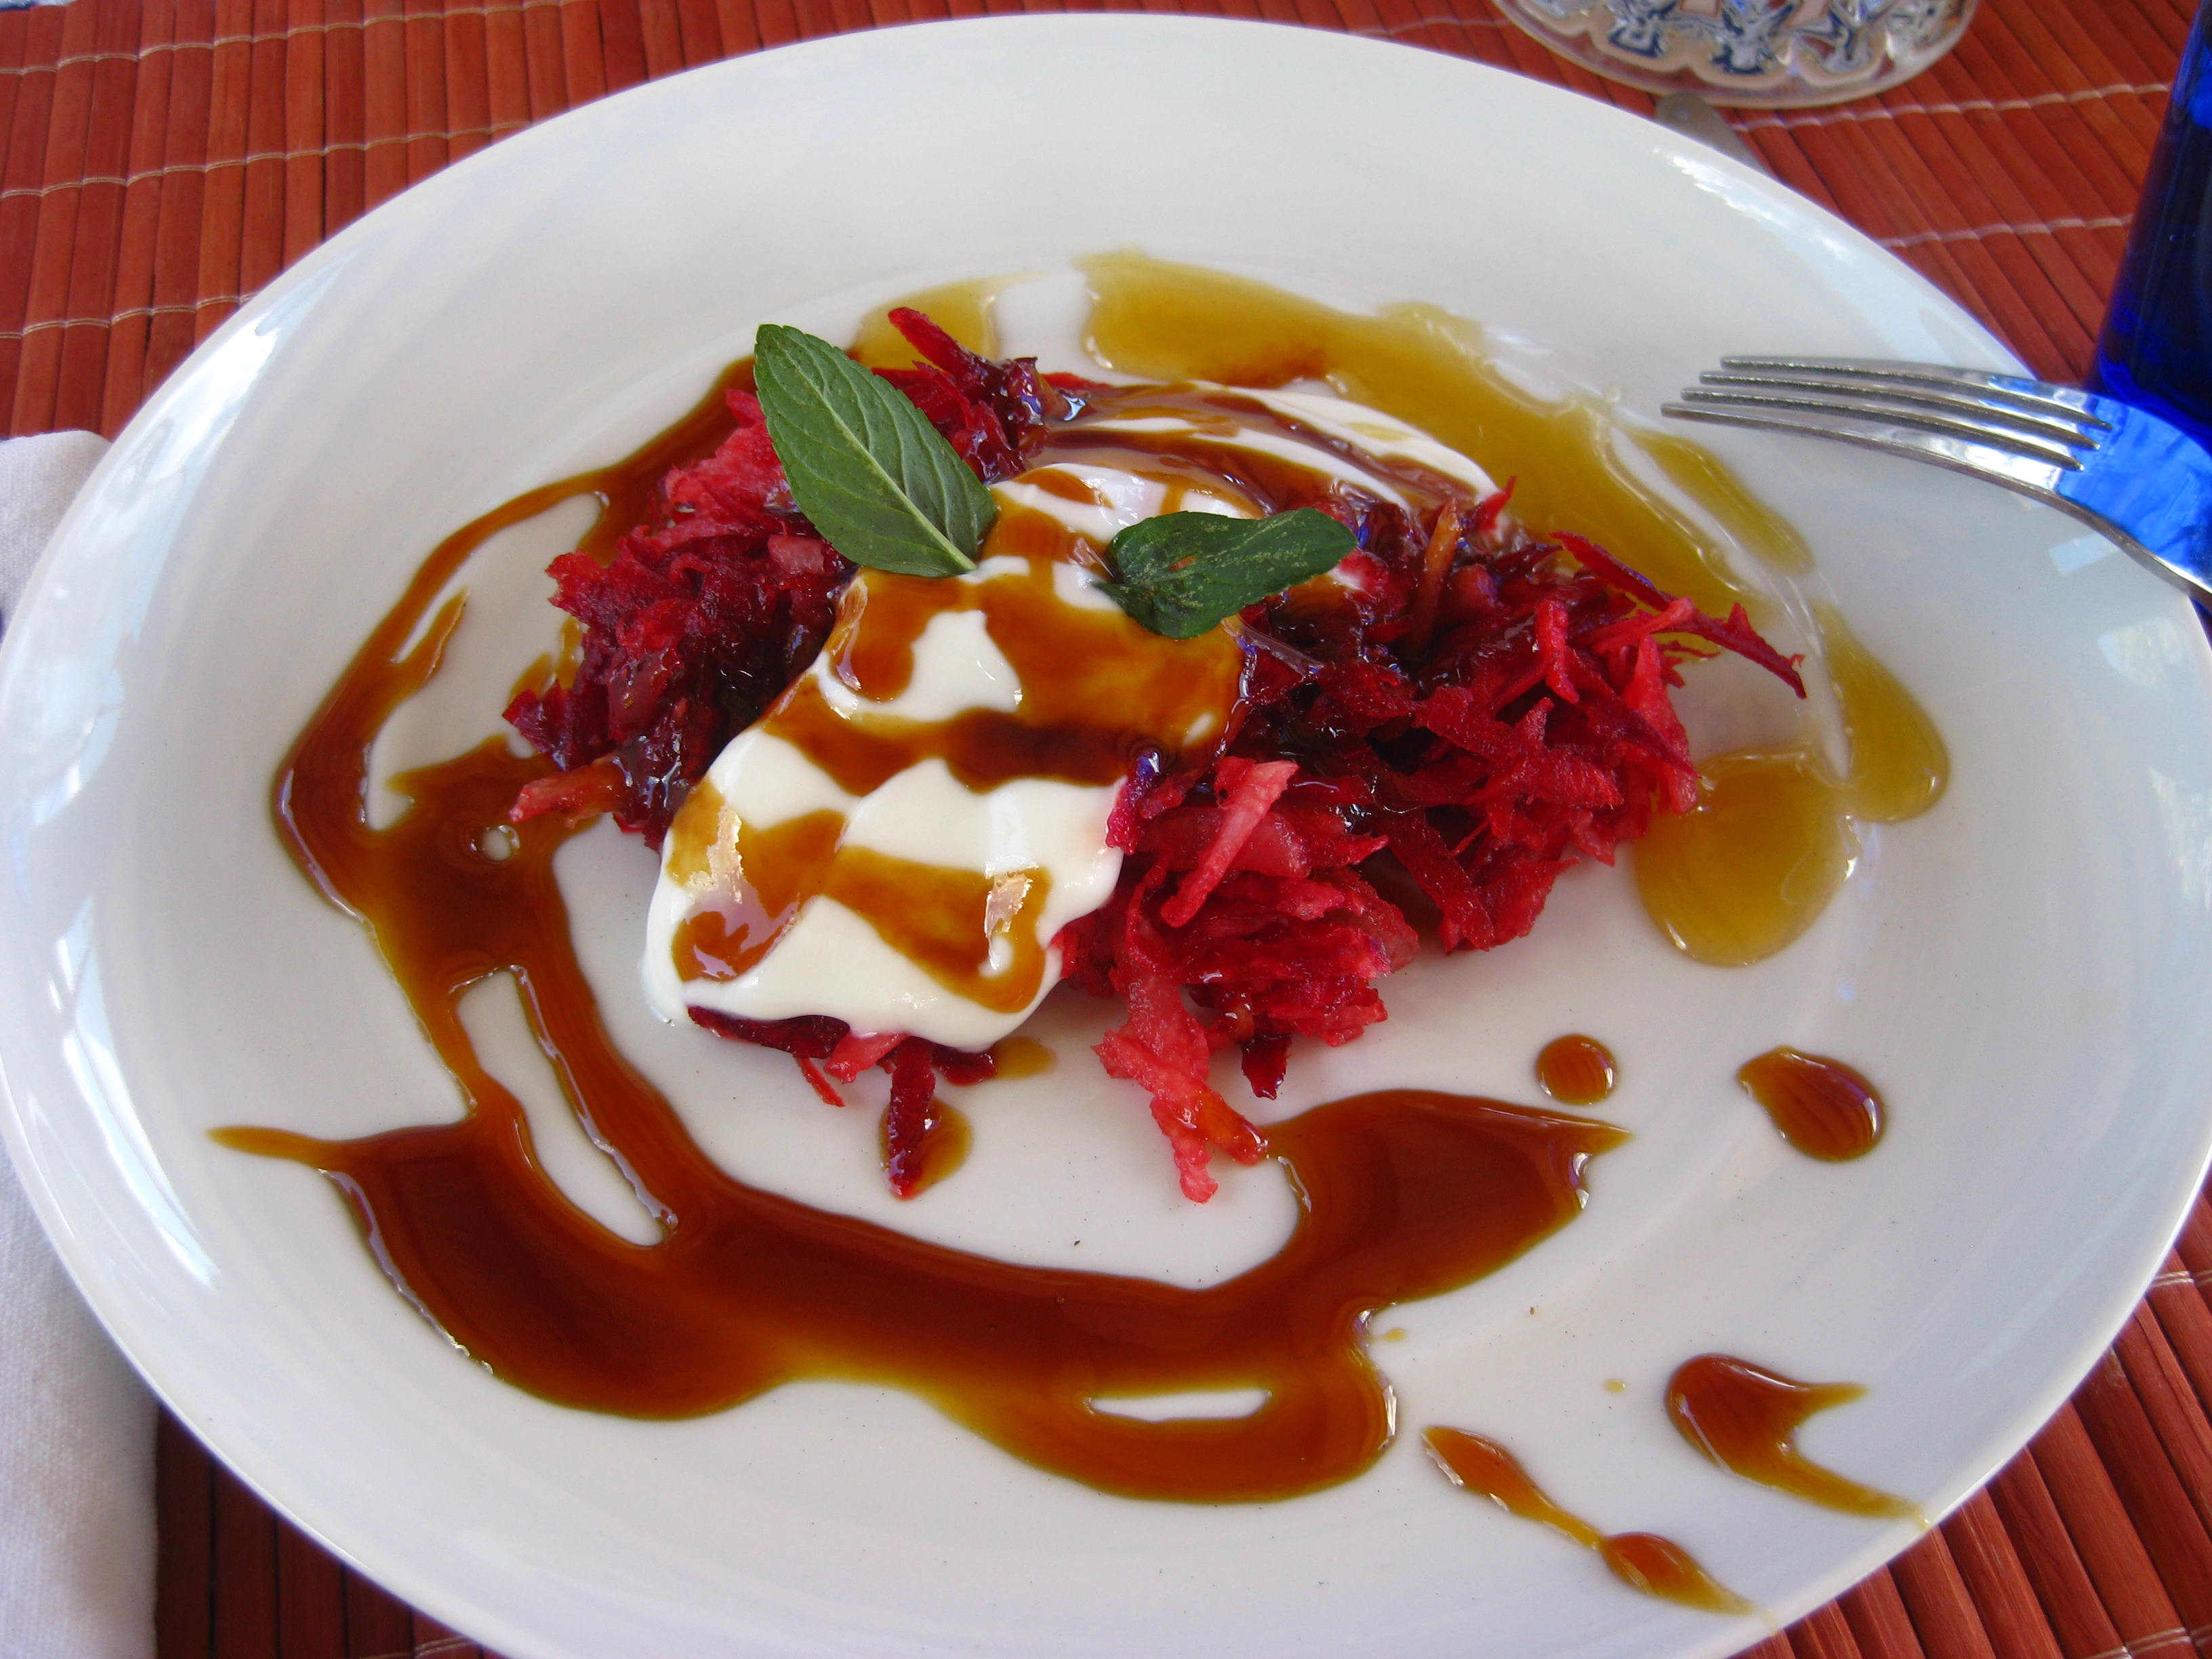 Beetroot dessert after Via Organica trail ride - San Miguel de Allende, Mexico